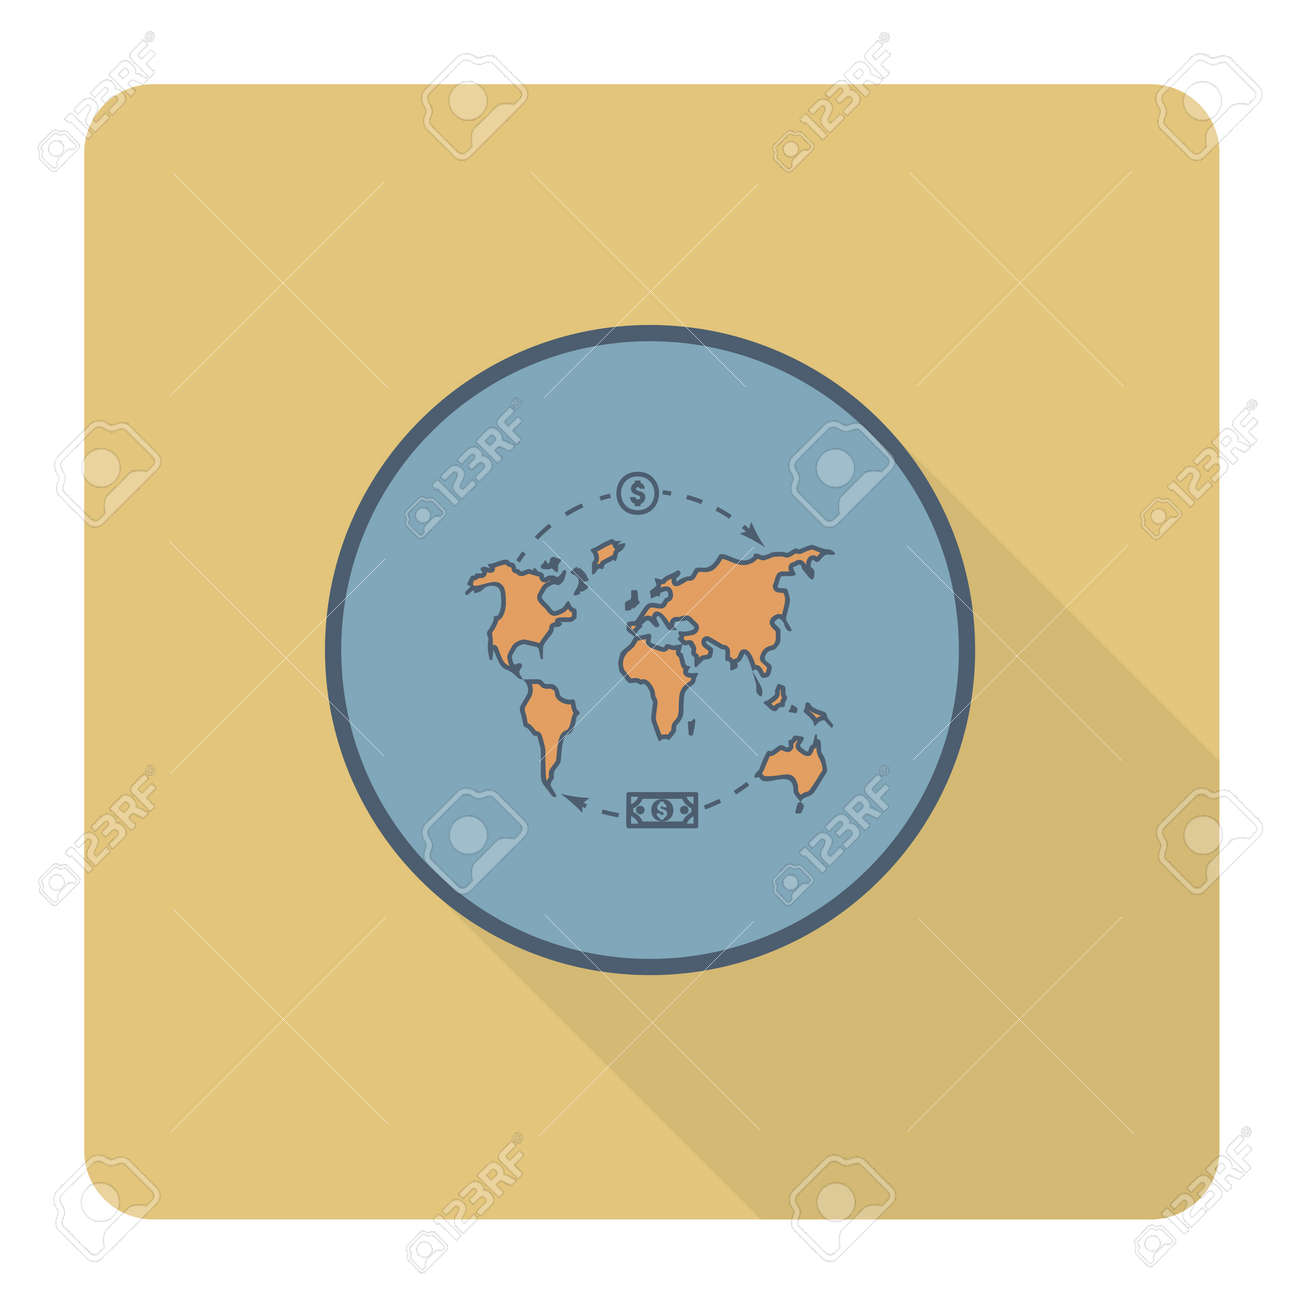 World map and money business and finance single flat icon simple world map and money business and finance single flat icon simple and minimalistic gumiabroncs Image collections